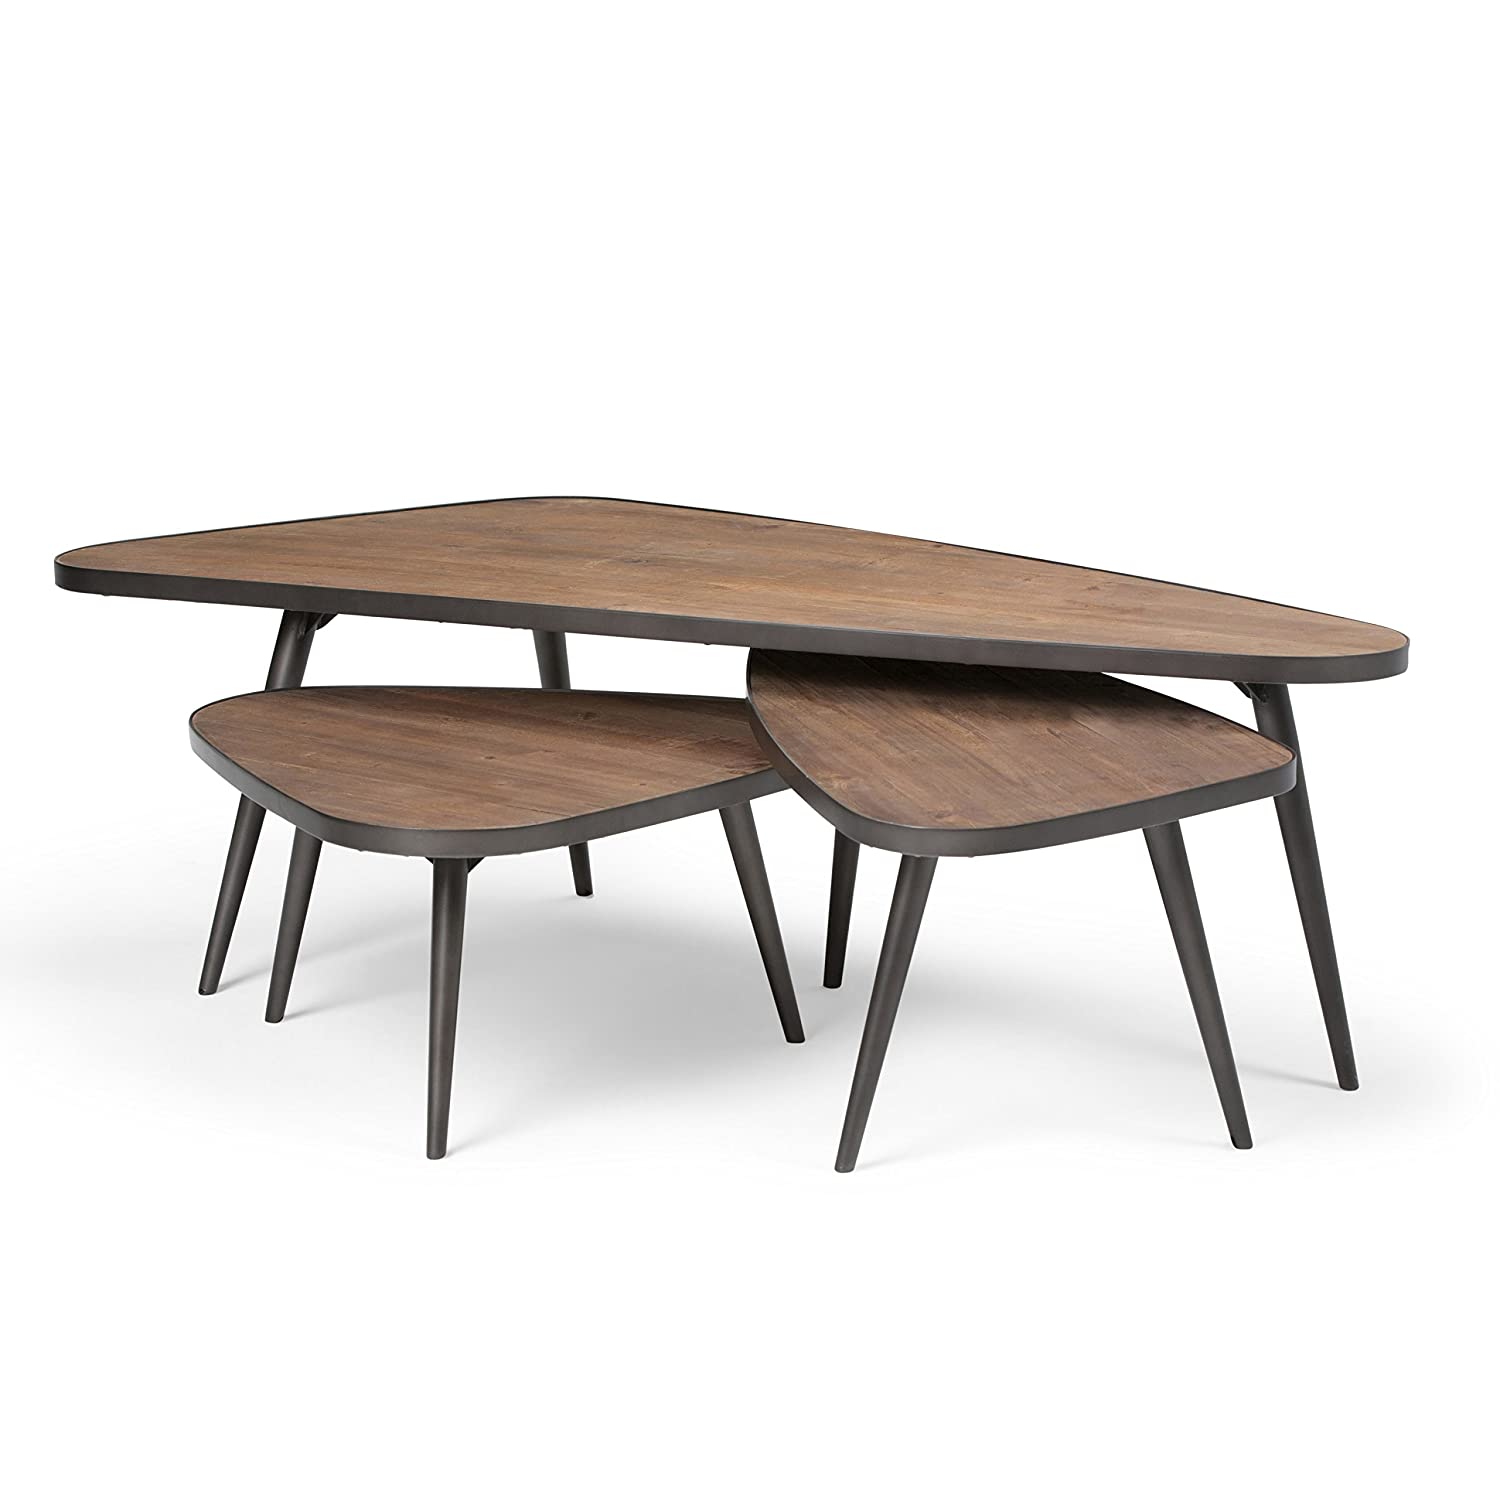 b86029631b55 Amazon.com  Simpli Home AXCABY-01 Aubrey 3 Pc Nesting Coffee Table Set in  Distressed Wood  Kitchen   Dining